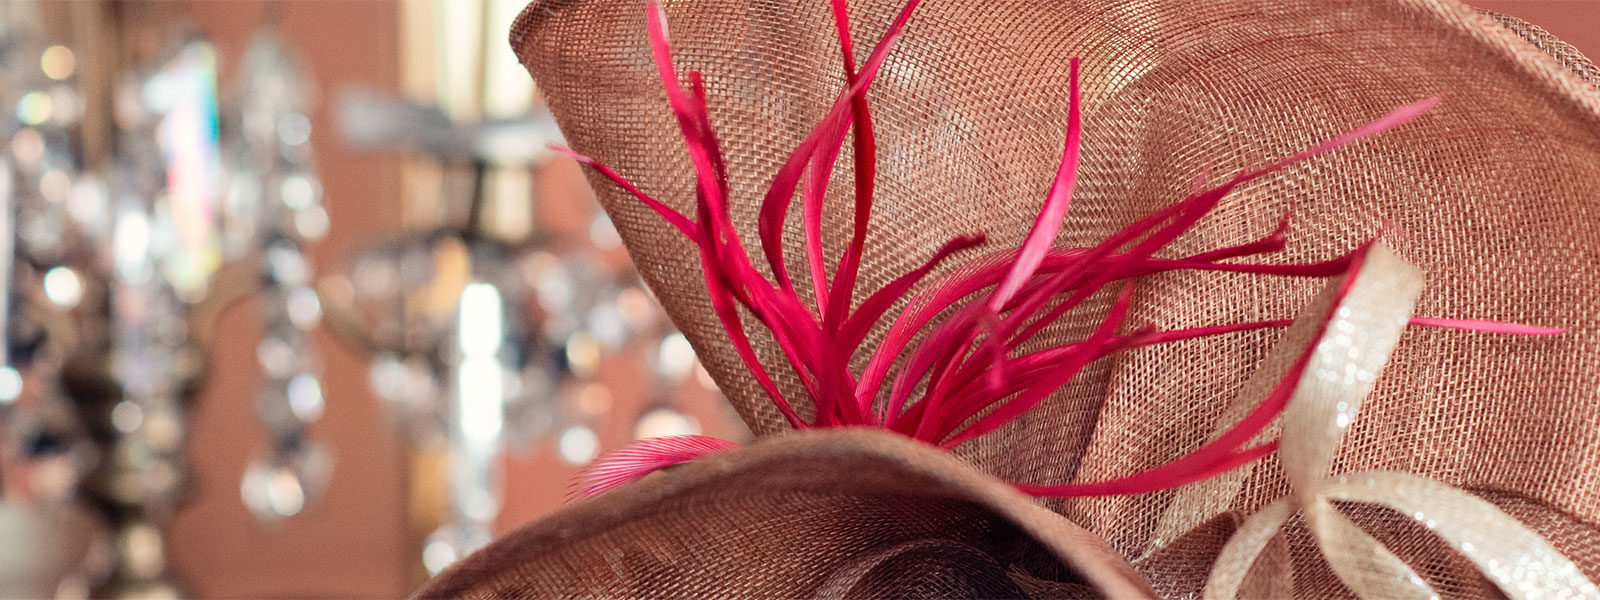 Close up of hat with feathers